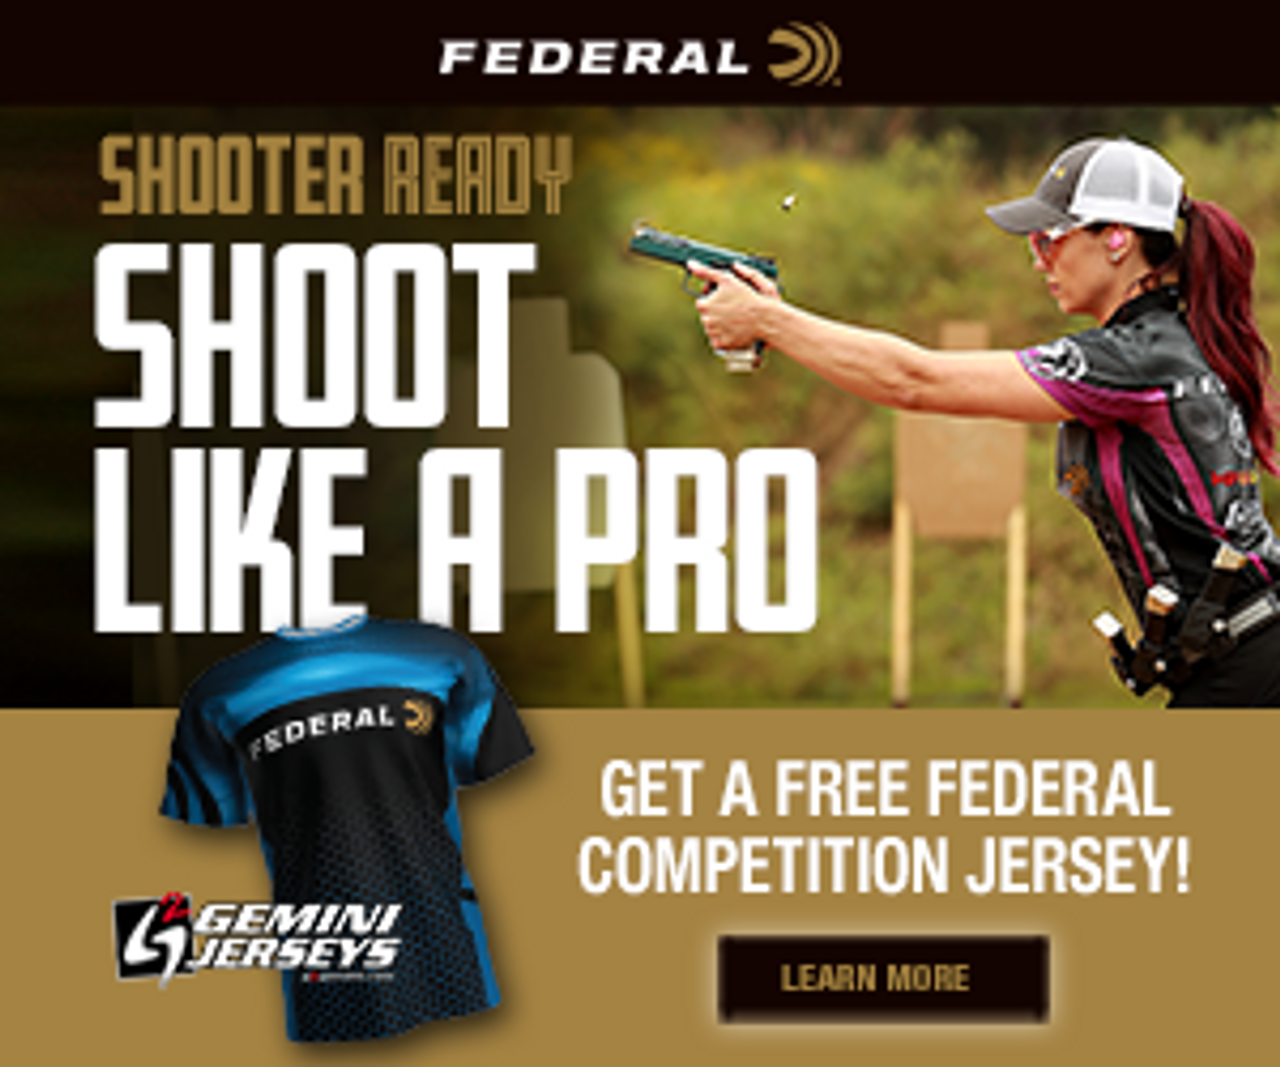 Federal Shoot Like A Pro Rebate